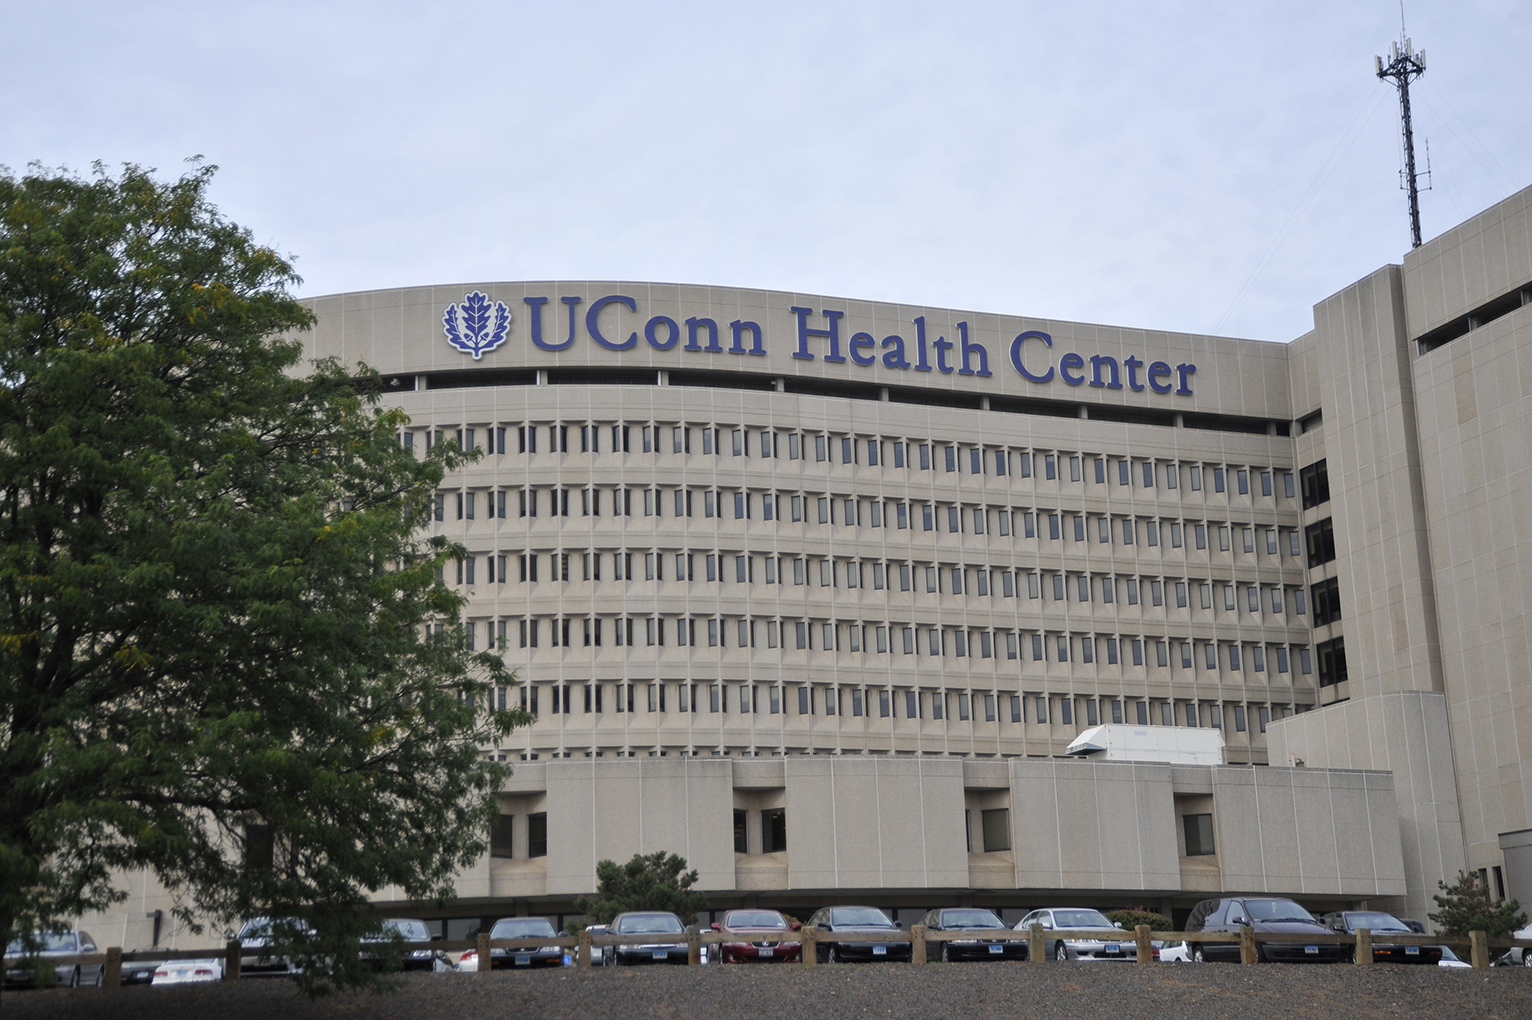 UConn School of Medicine has been selected by the American Medical Association to join a medical school consortium. (The Daily Campus/File Photo)